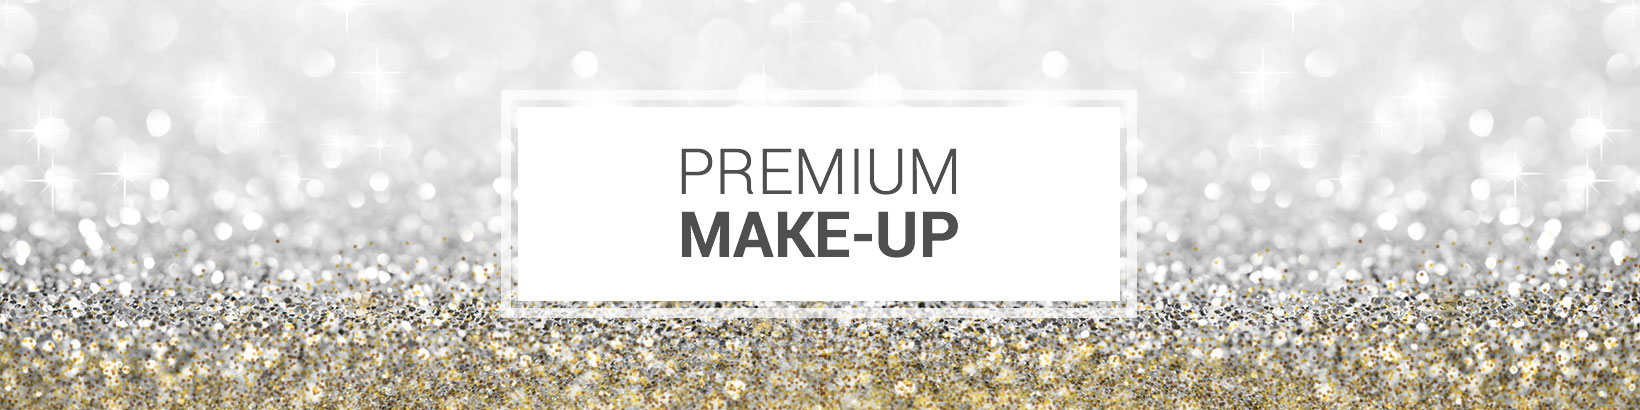 premium-make-up-header